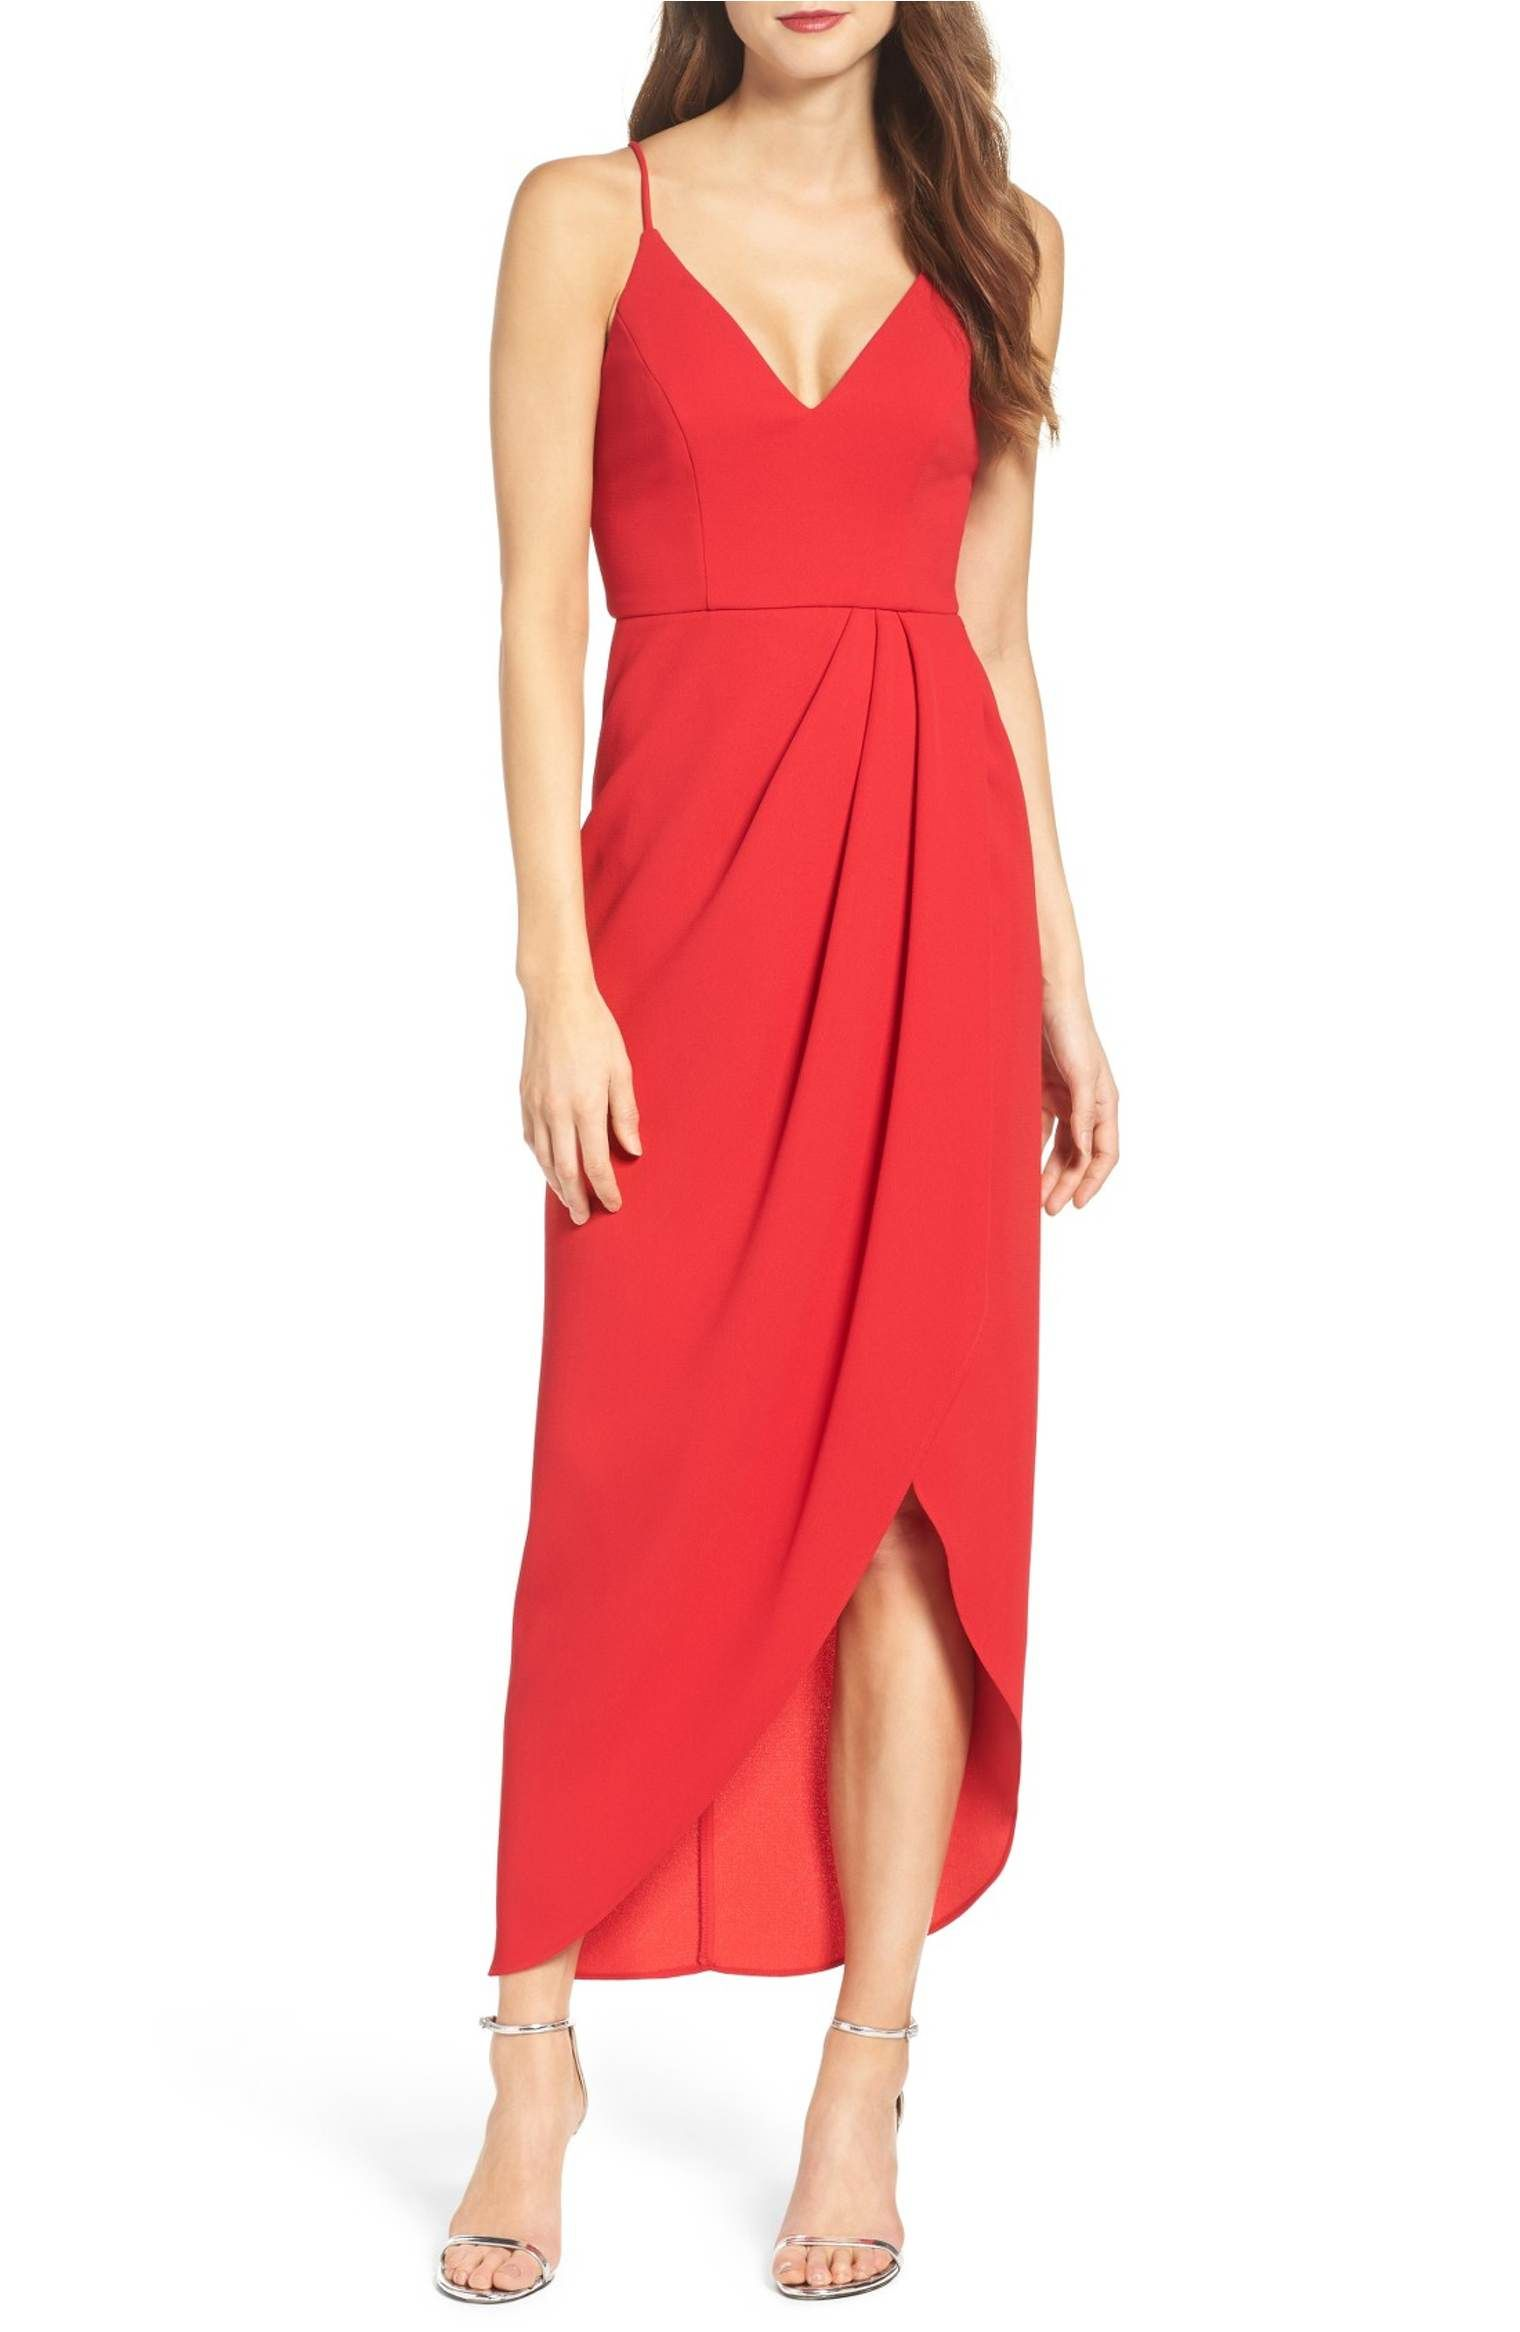 f1dc05659748 Main Image - Xscape High/Low Dress | Looks I Love in 2019 | Xscape ...